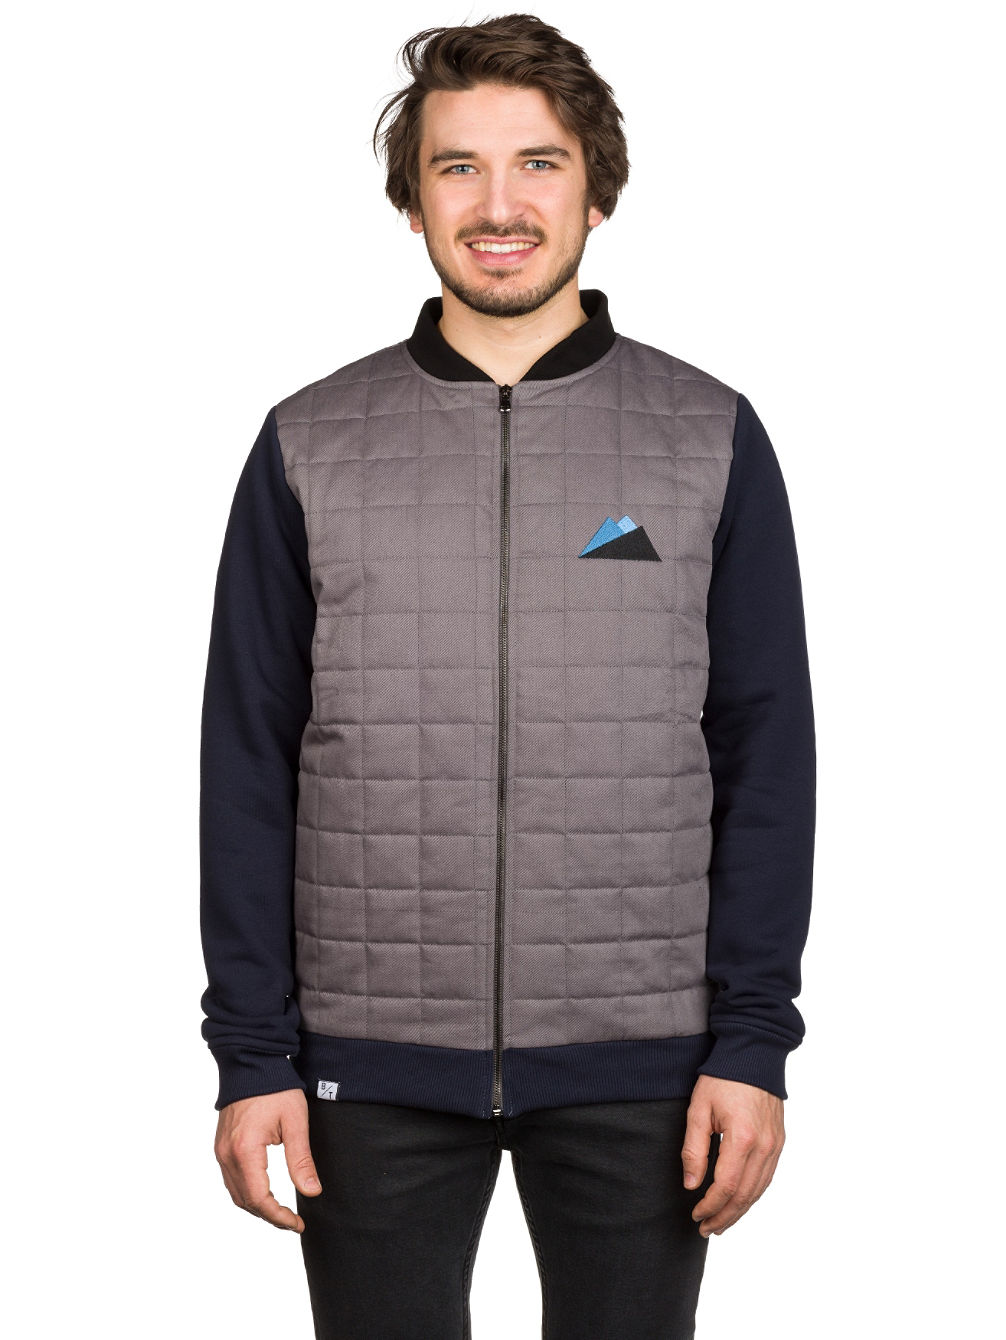 BT Quilted Jacket